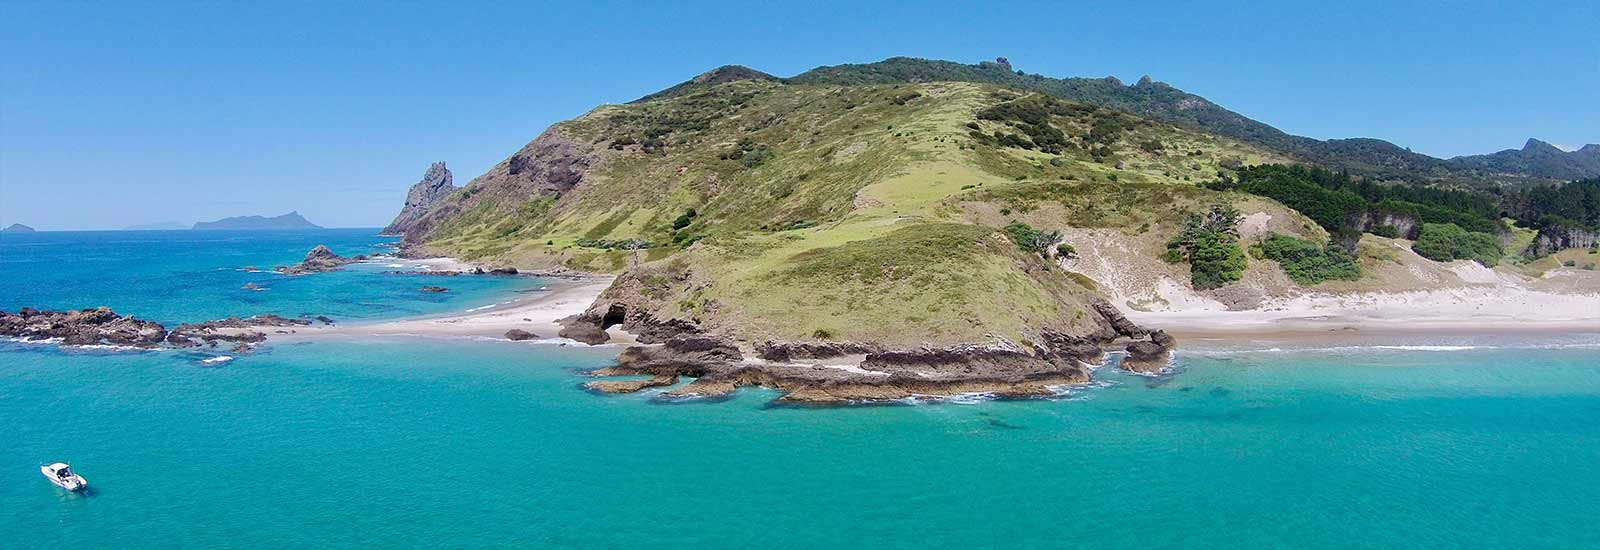 Bream Head Scenic Reserve